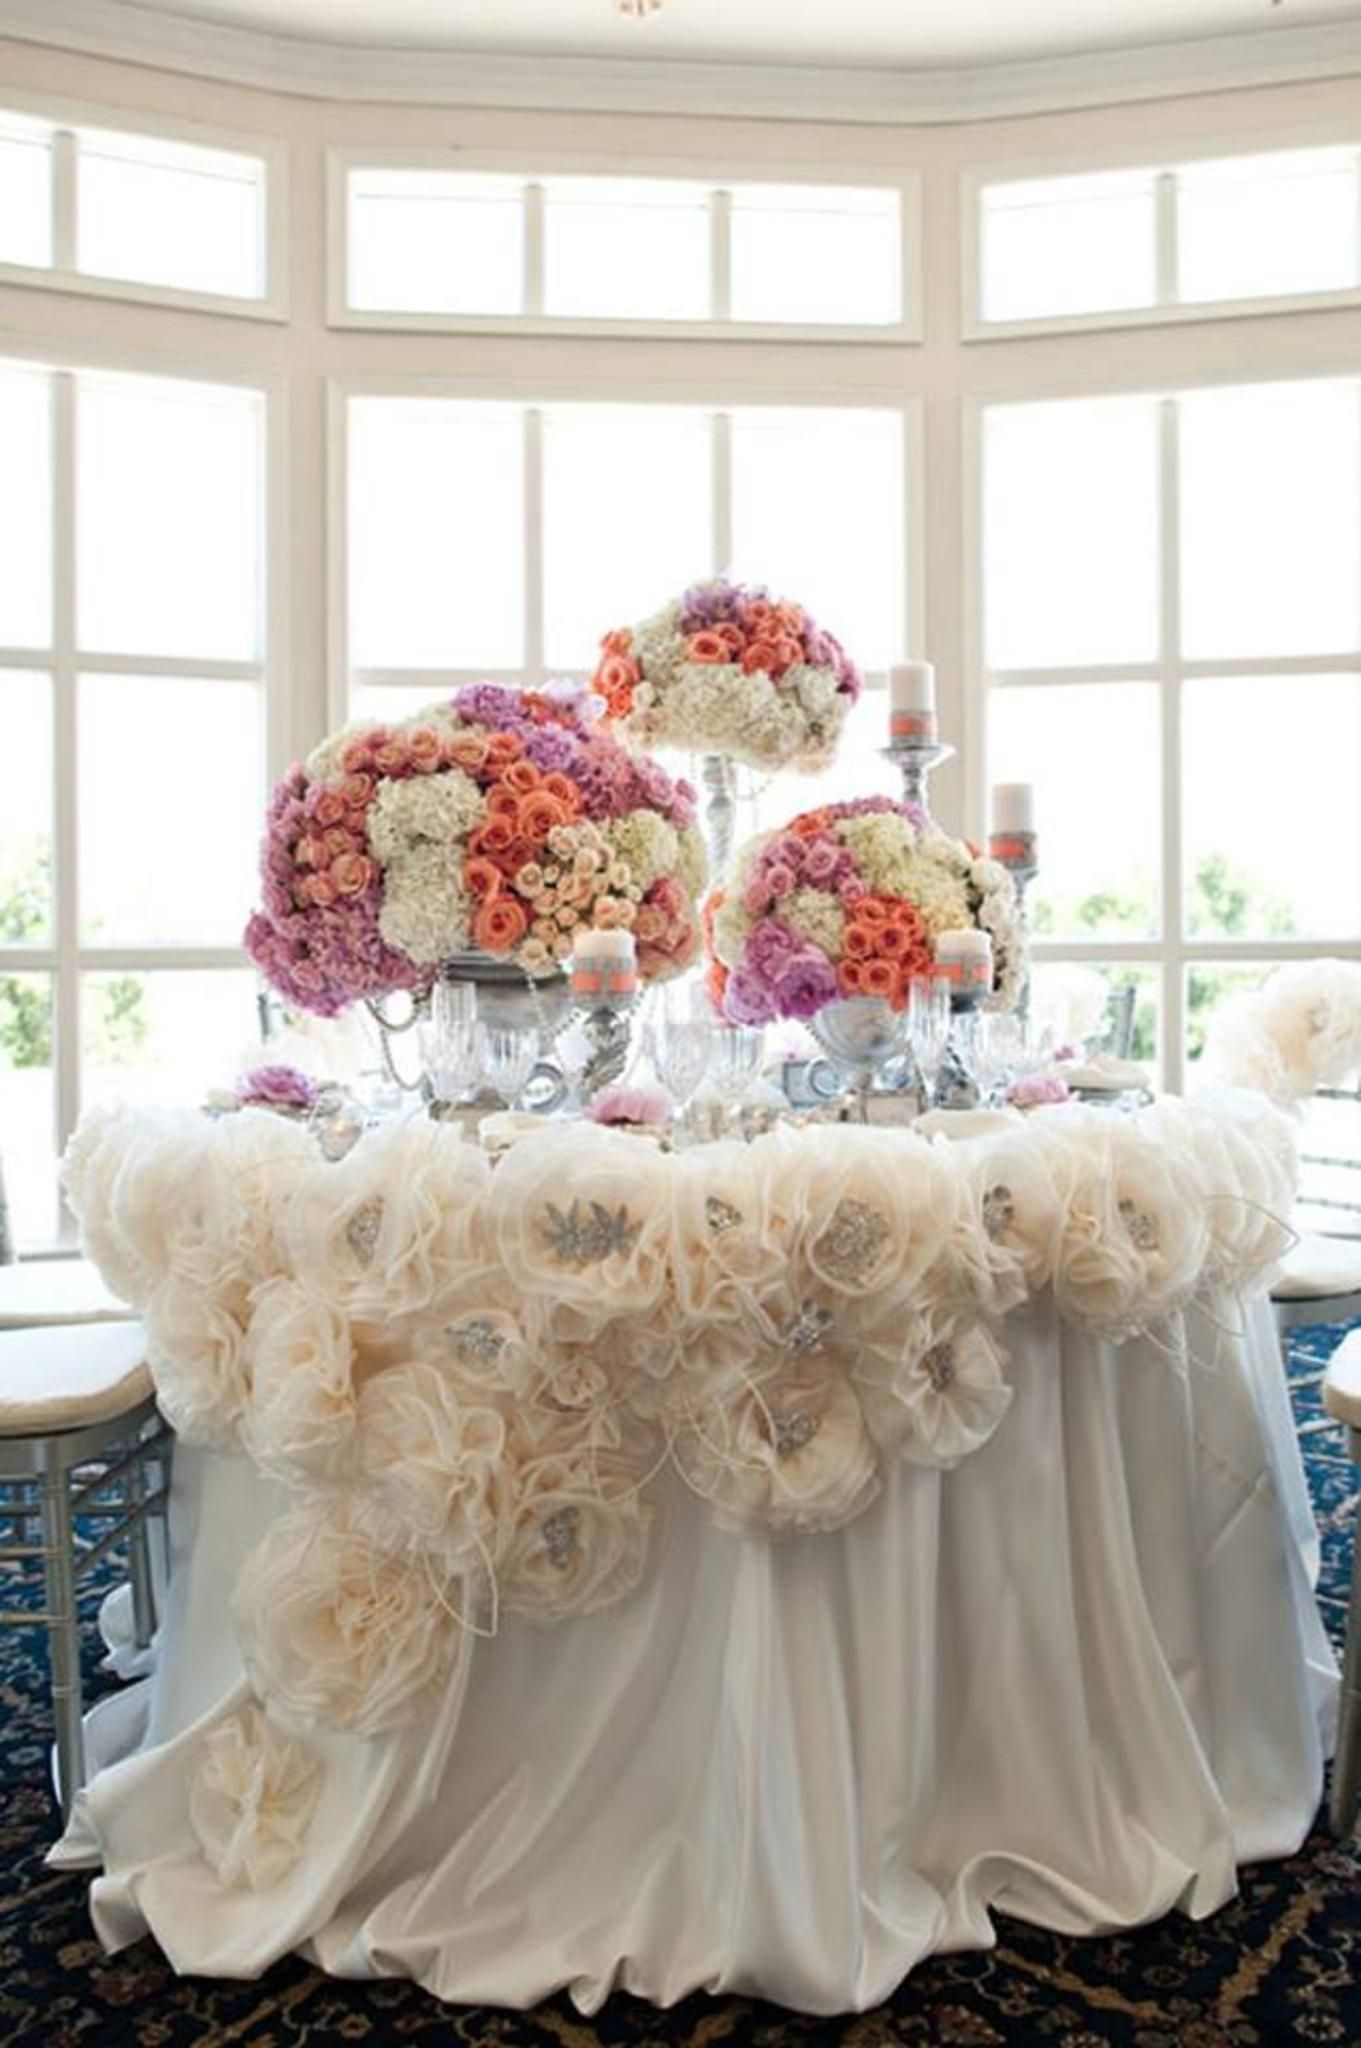 I Love The Fluffy Tule Flowers On The Tablecloth And